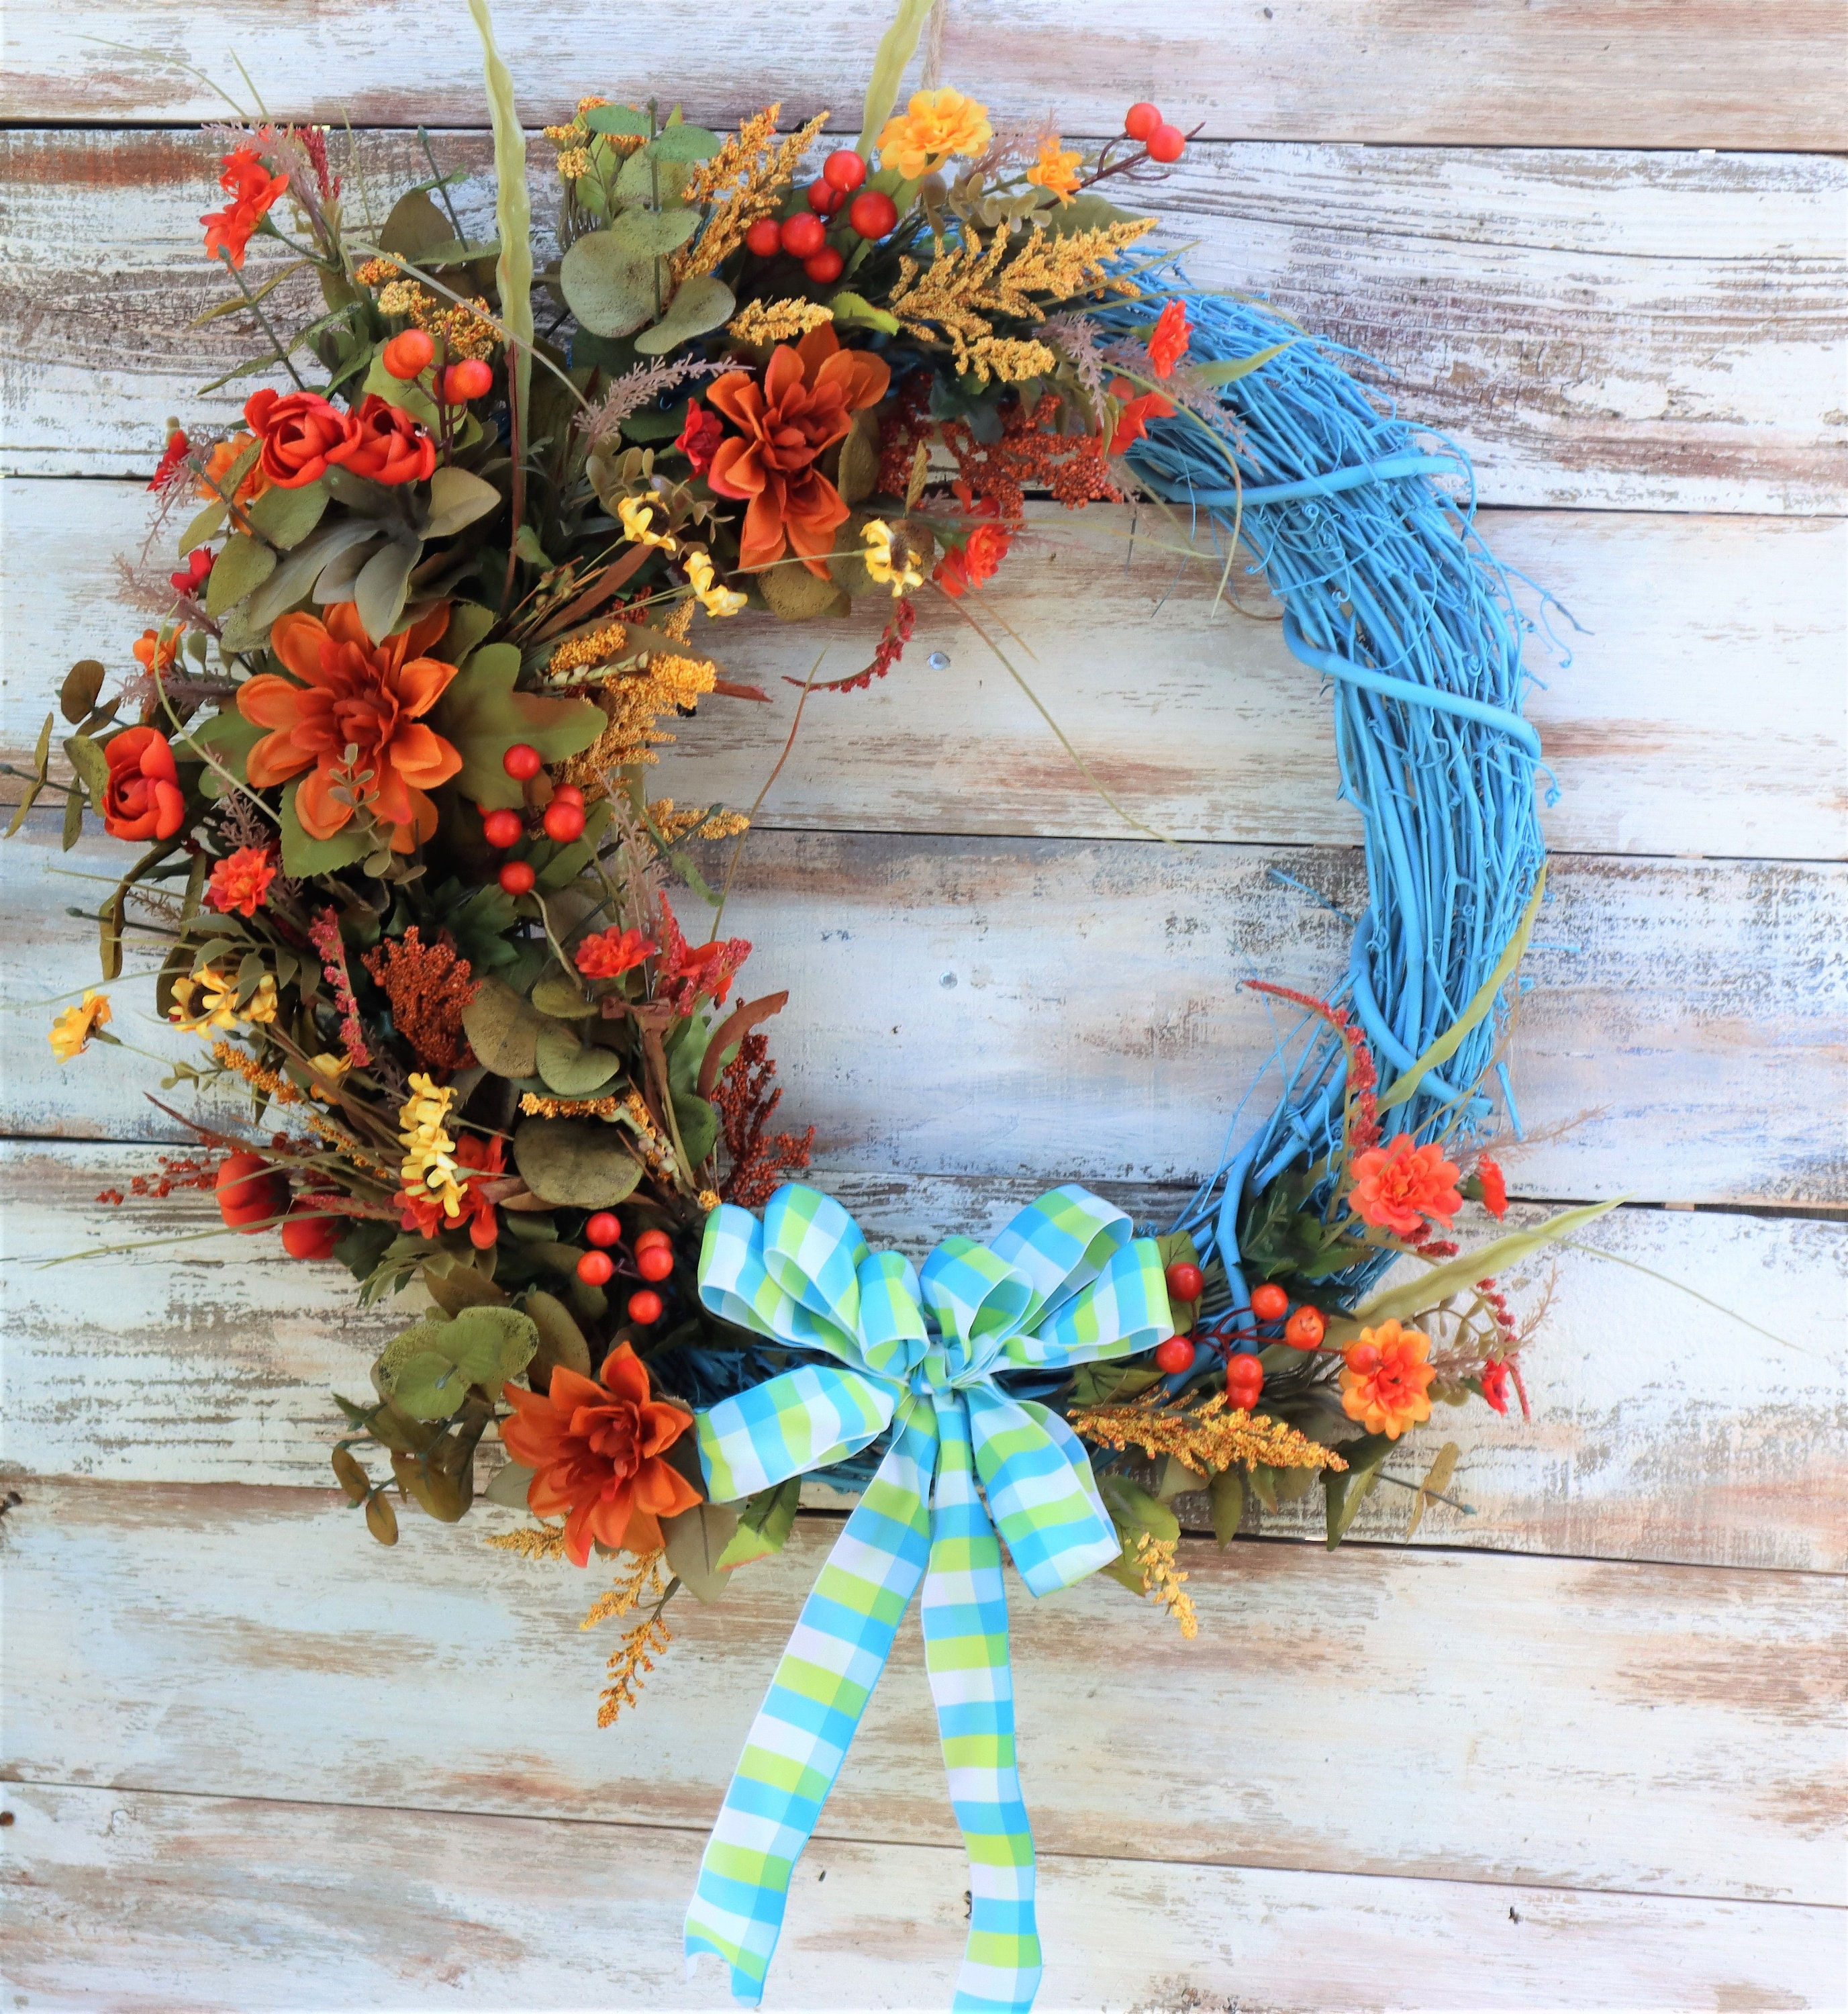 Fall Grapevine Wreath Harvest Wreath Thanksgiving Wreath Autumn Wreath Front Door Wreath Front Door Decor Wall Decor In Out Decor